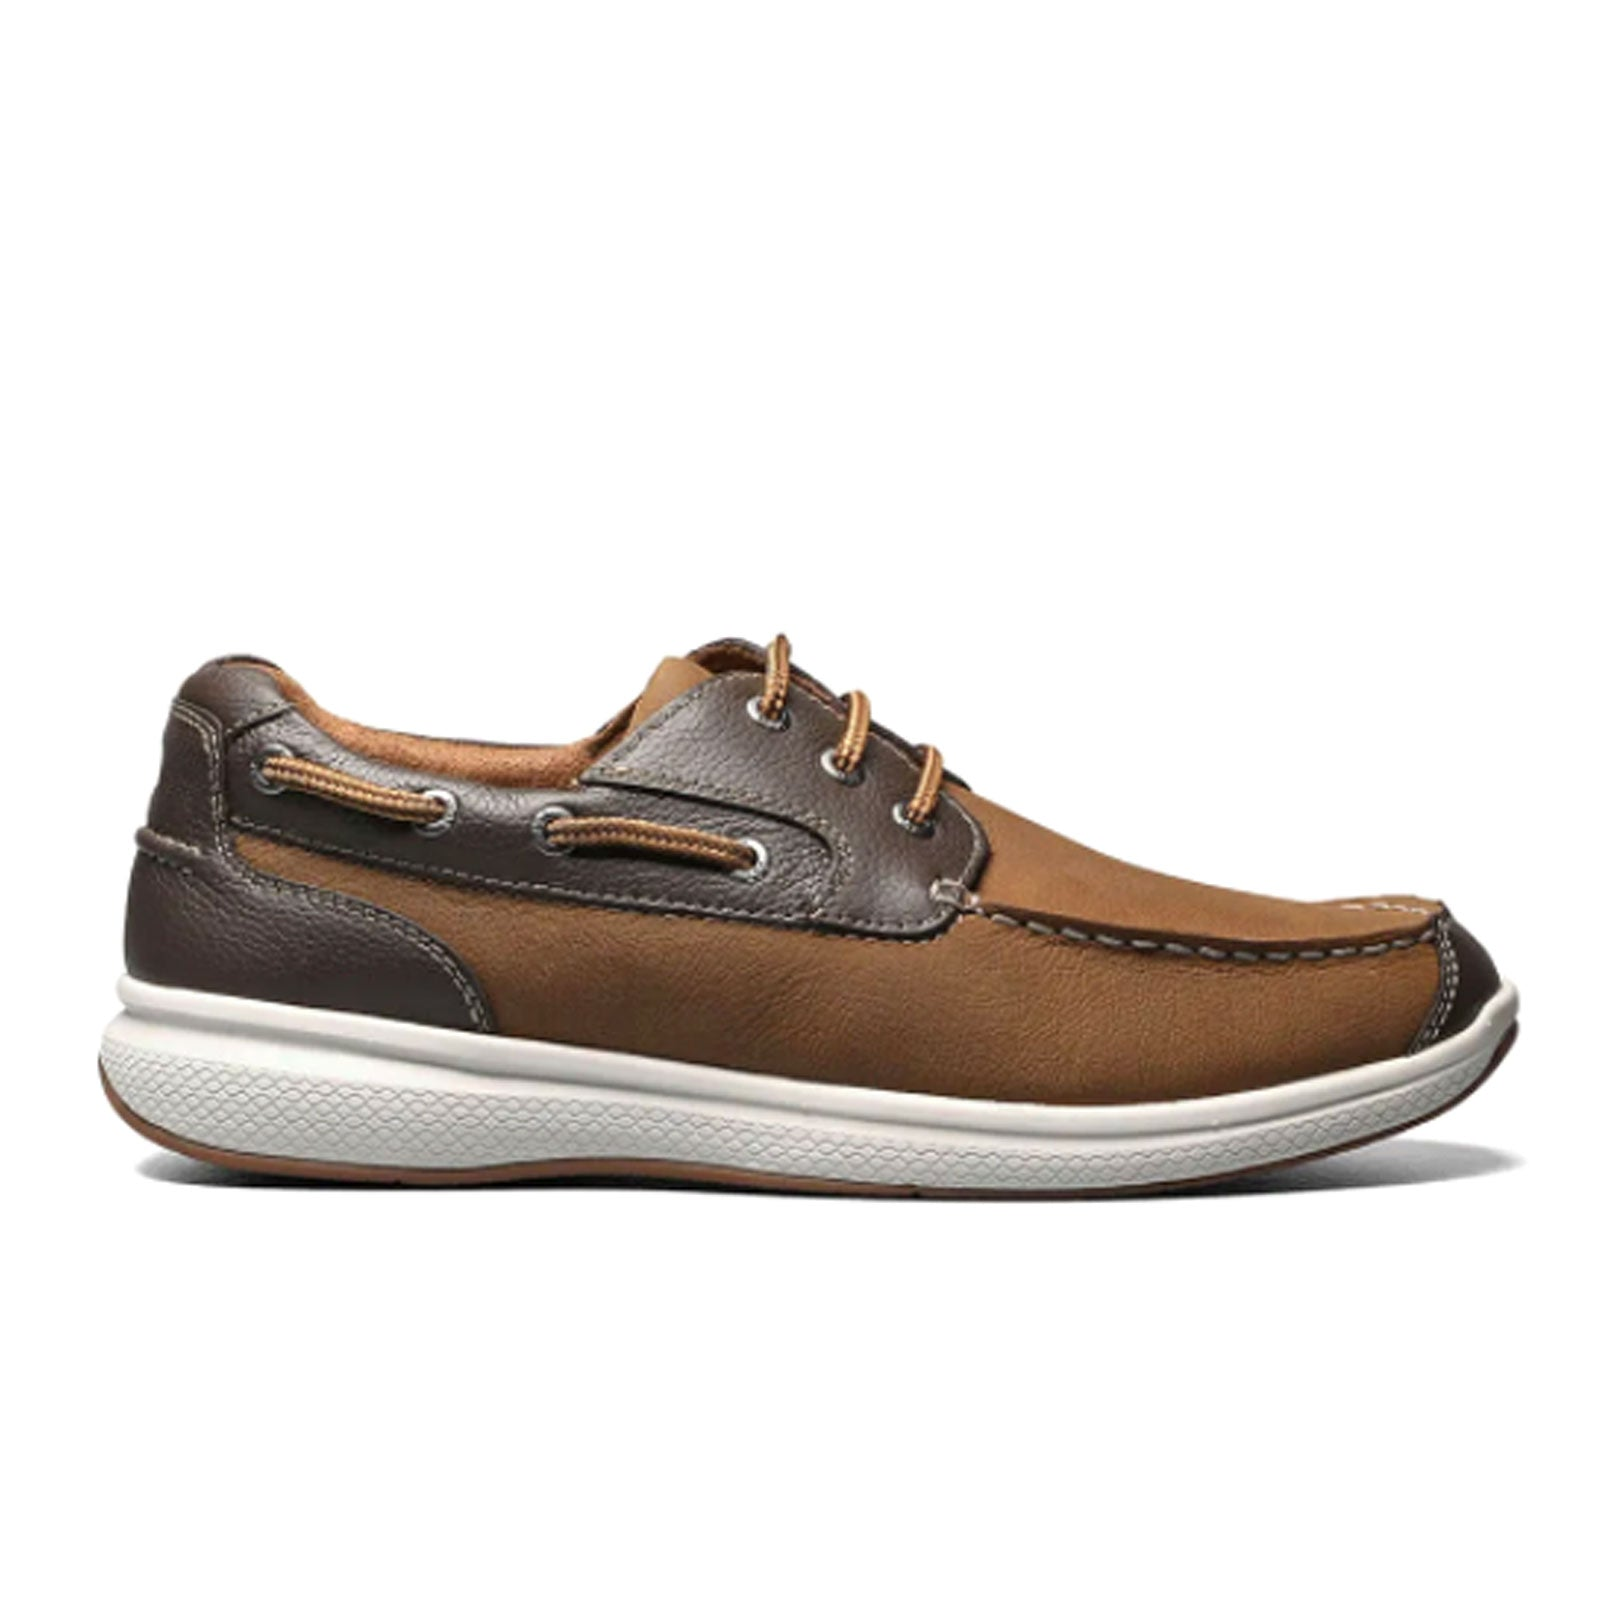 Florsheim Great Lakes Moc Toe (Men) - Stone Crazy Horse Dress/Casual|Boat Shoes - The Heel Shoe Fitters